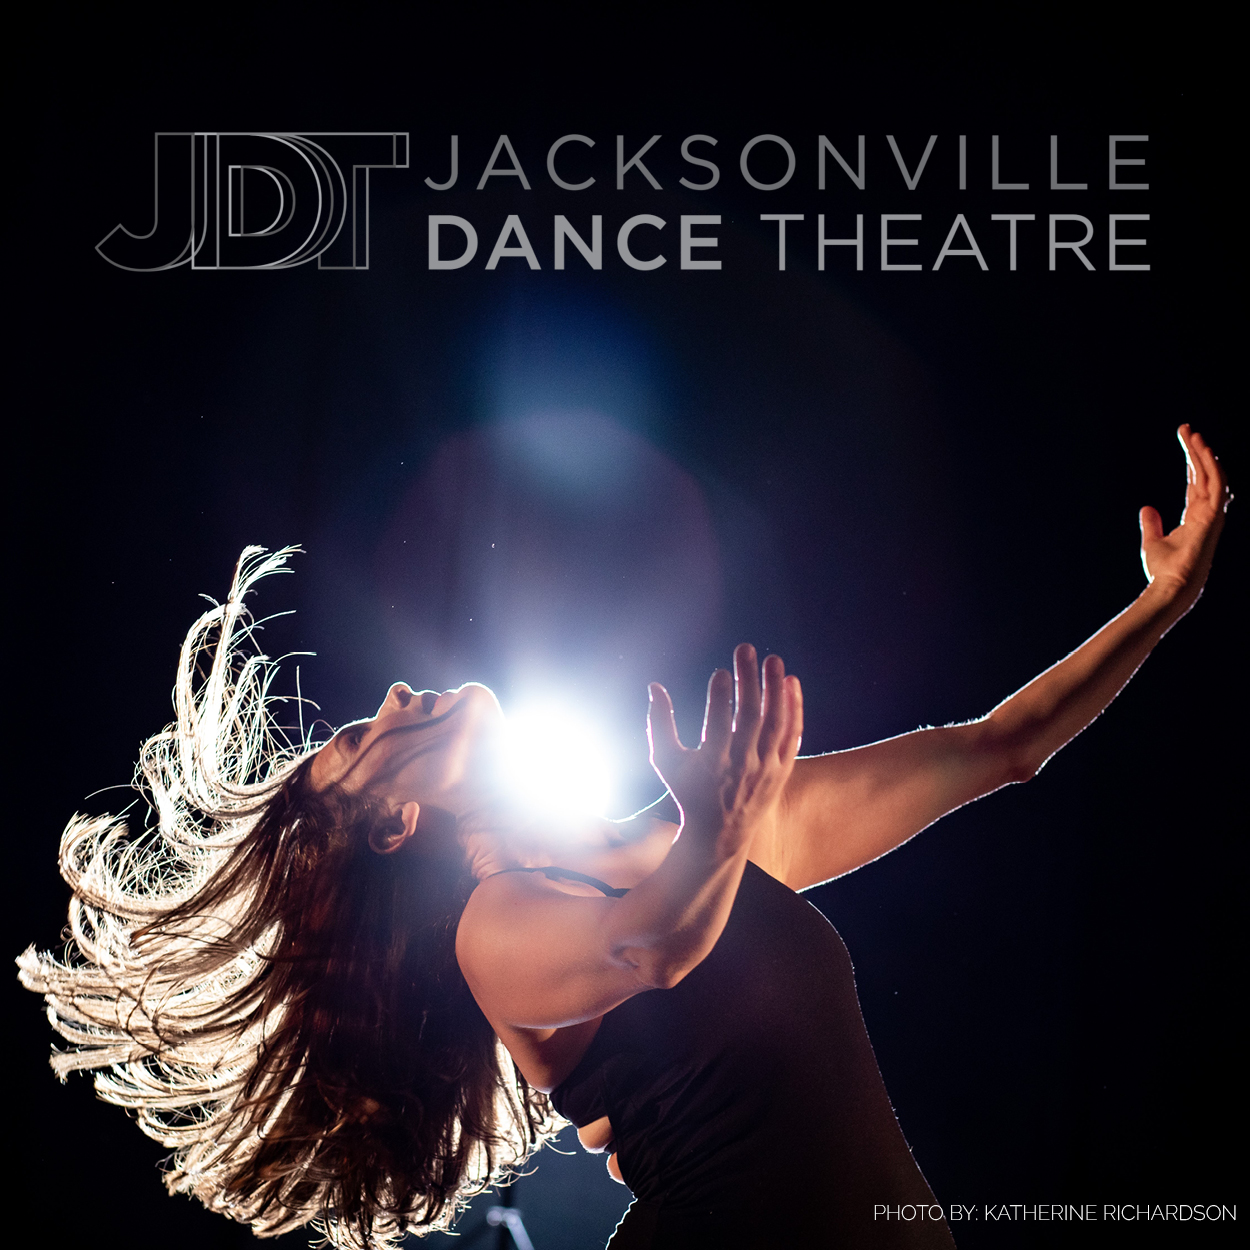 The 9th Annual Jacksonville Dance Theatre IN CONCERT